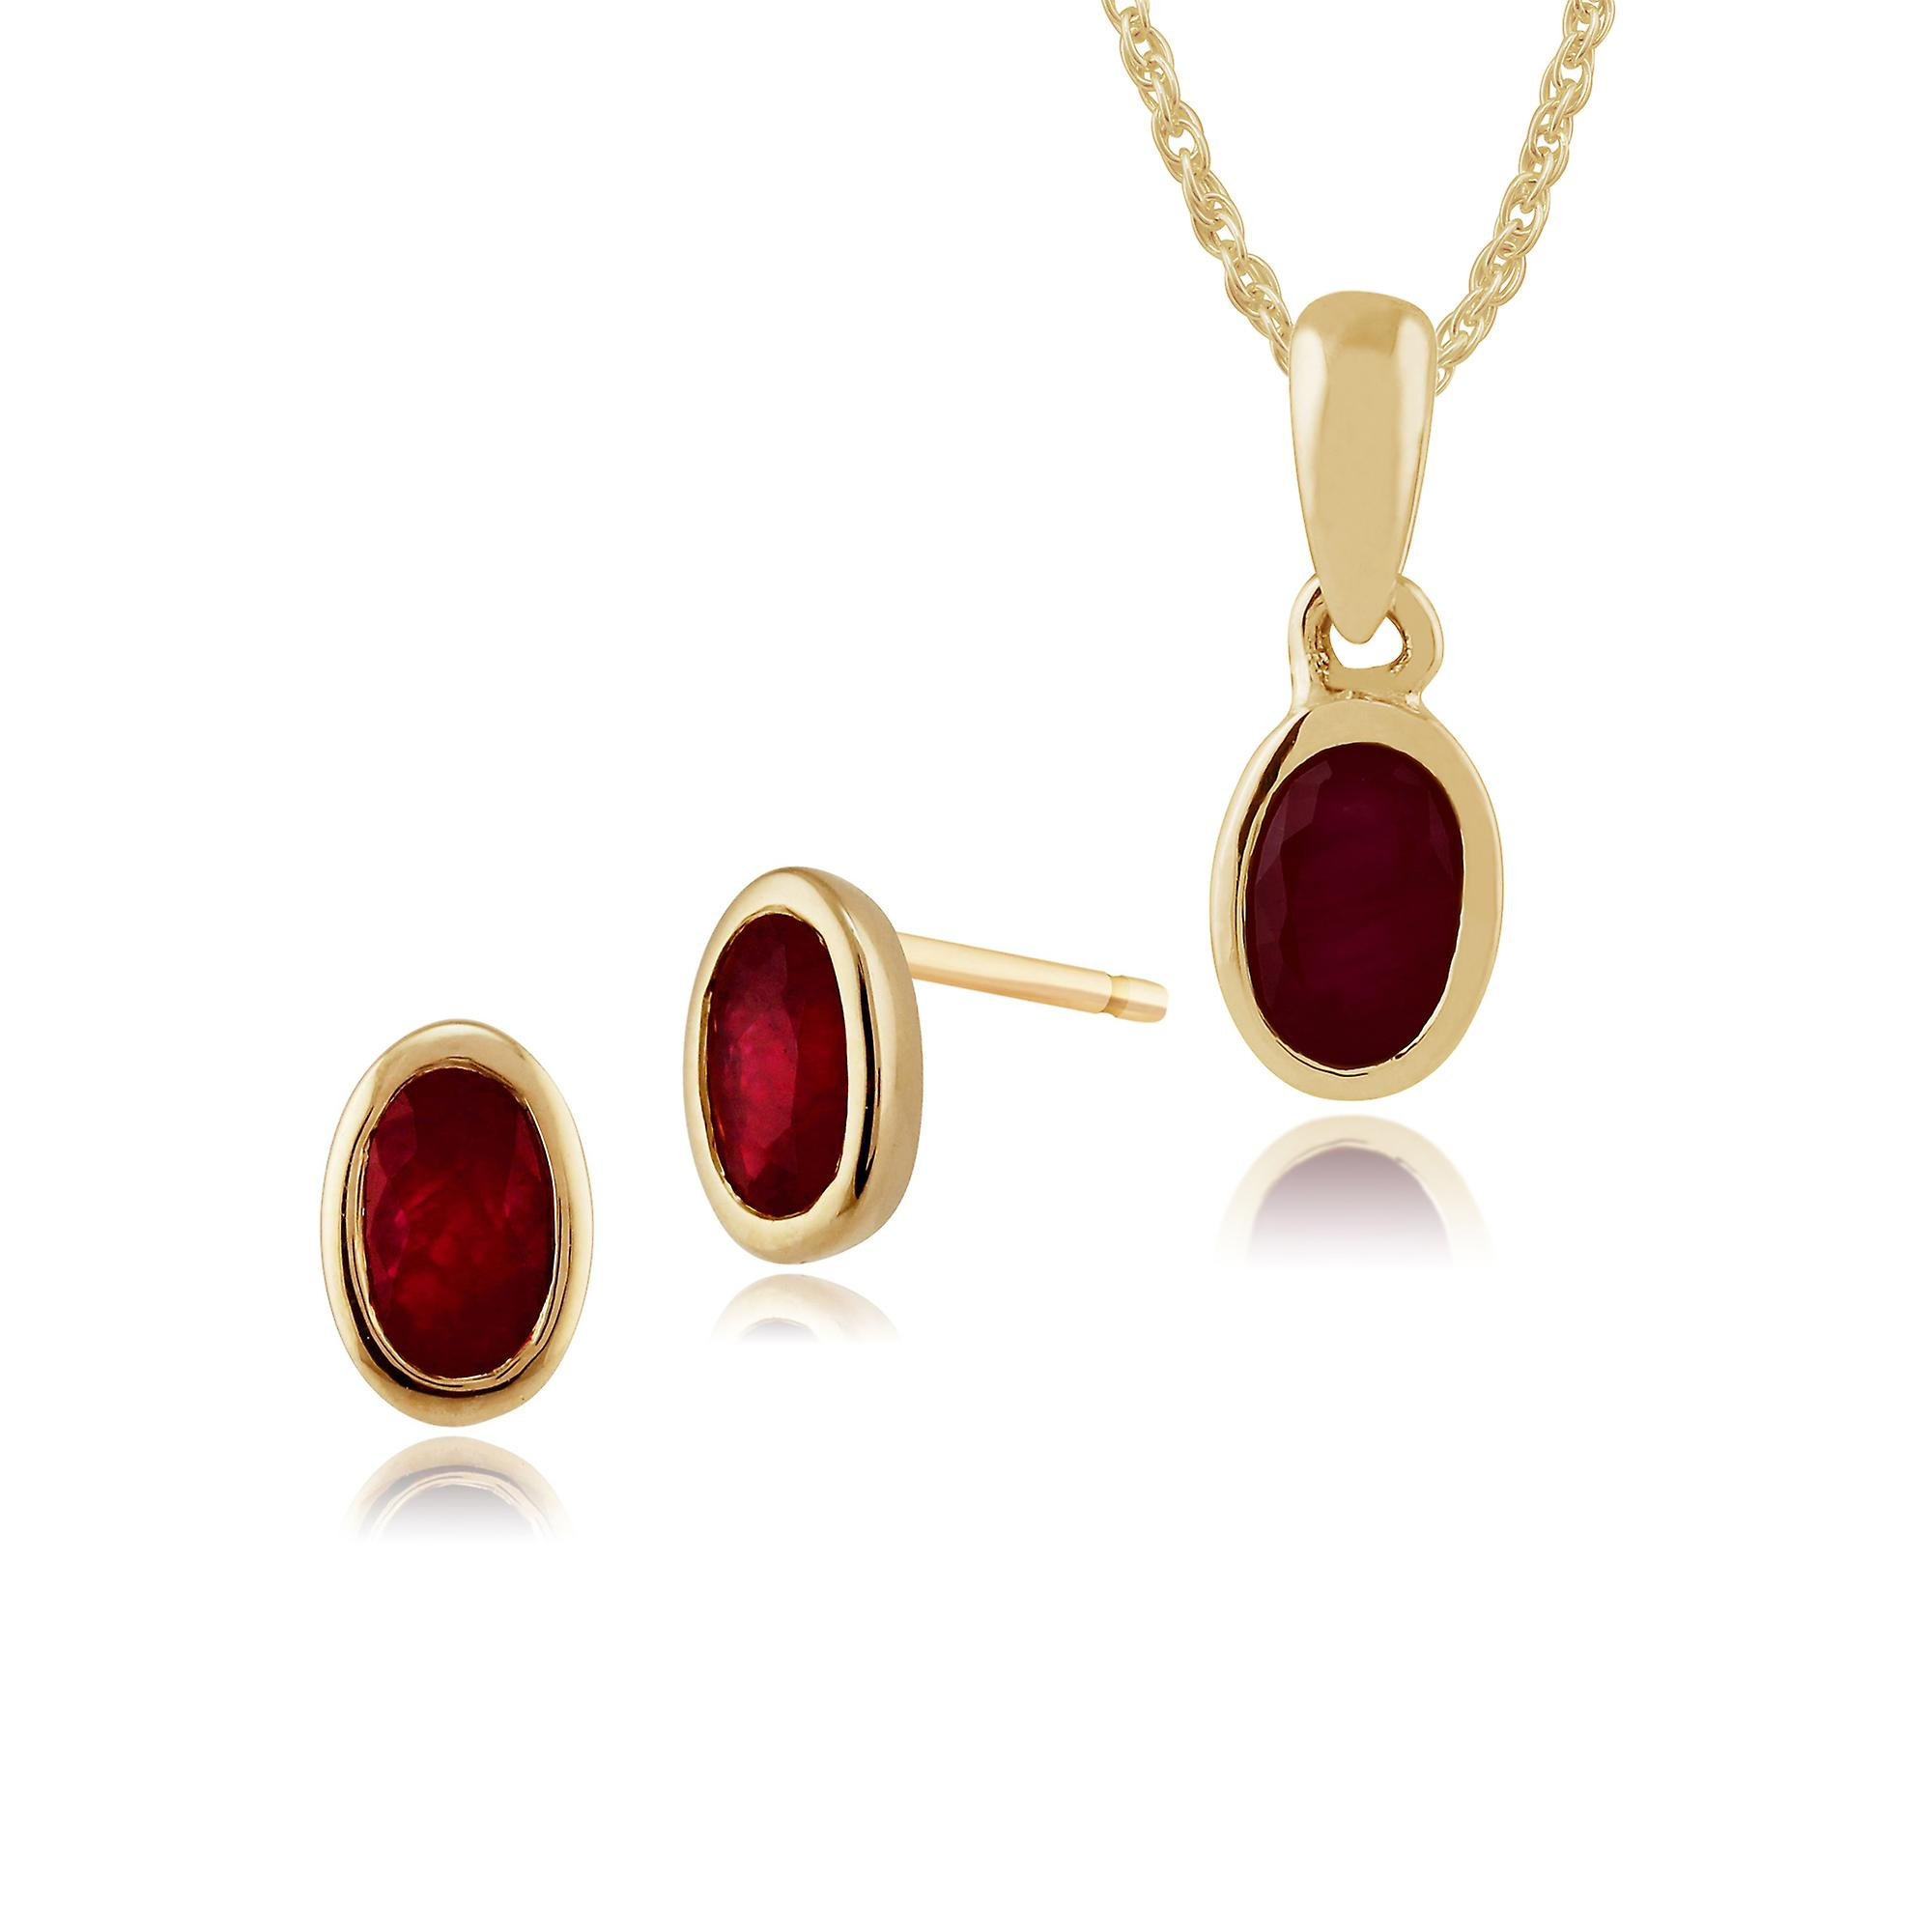 Gemondo 9ct Yellow Gold Ruby Framed Stud Earrings & 45cm Necklace Set